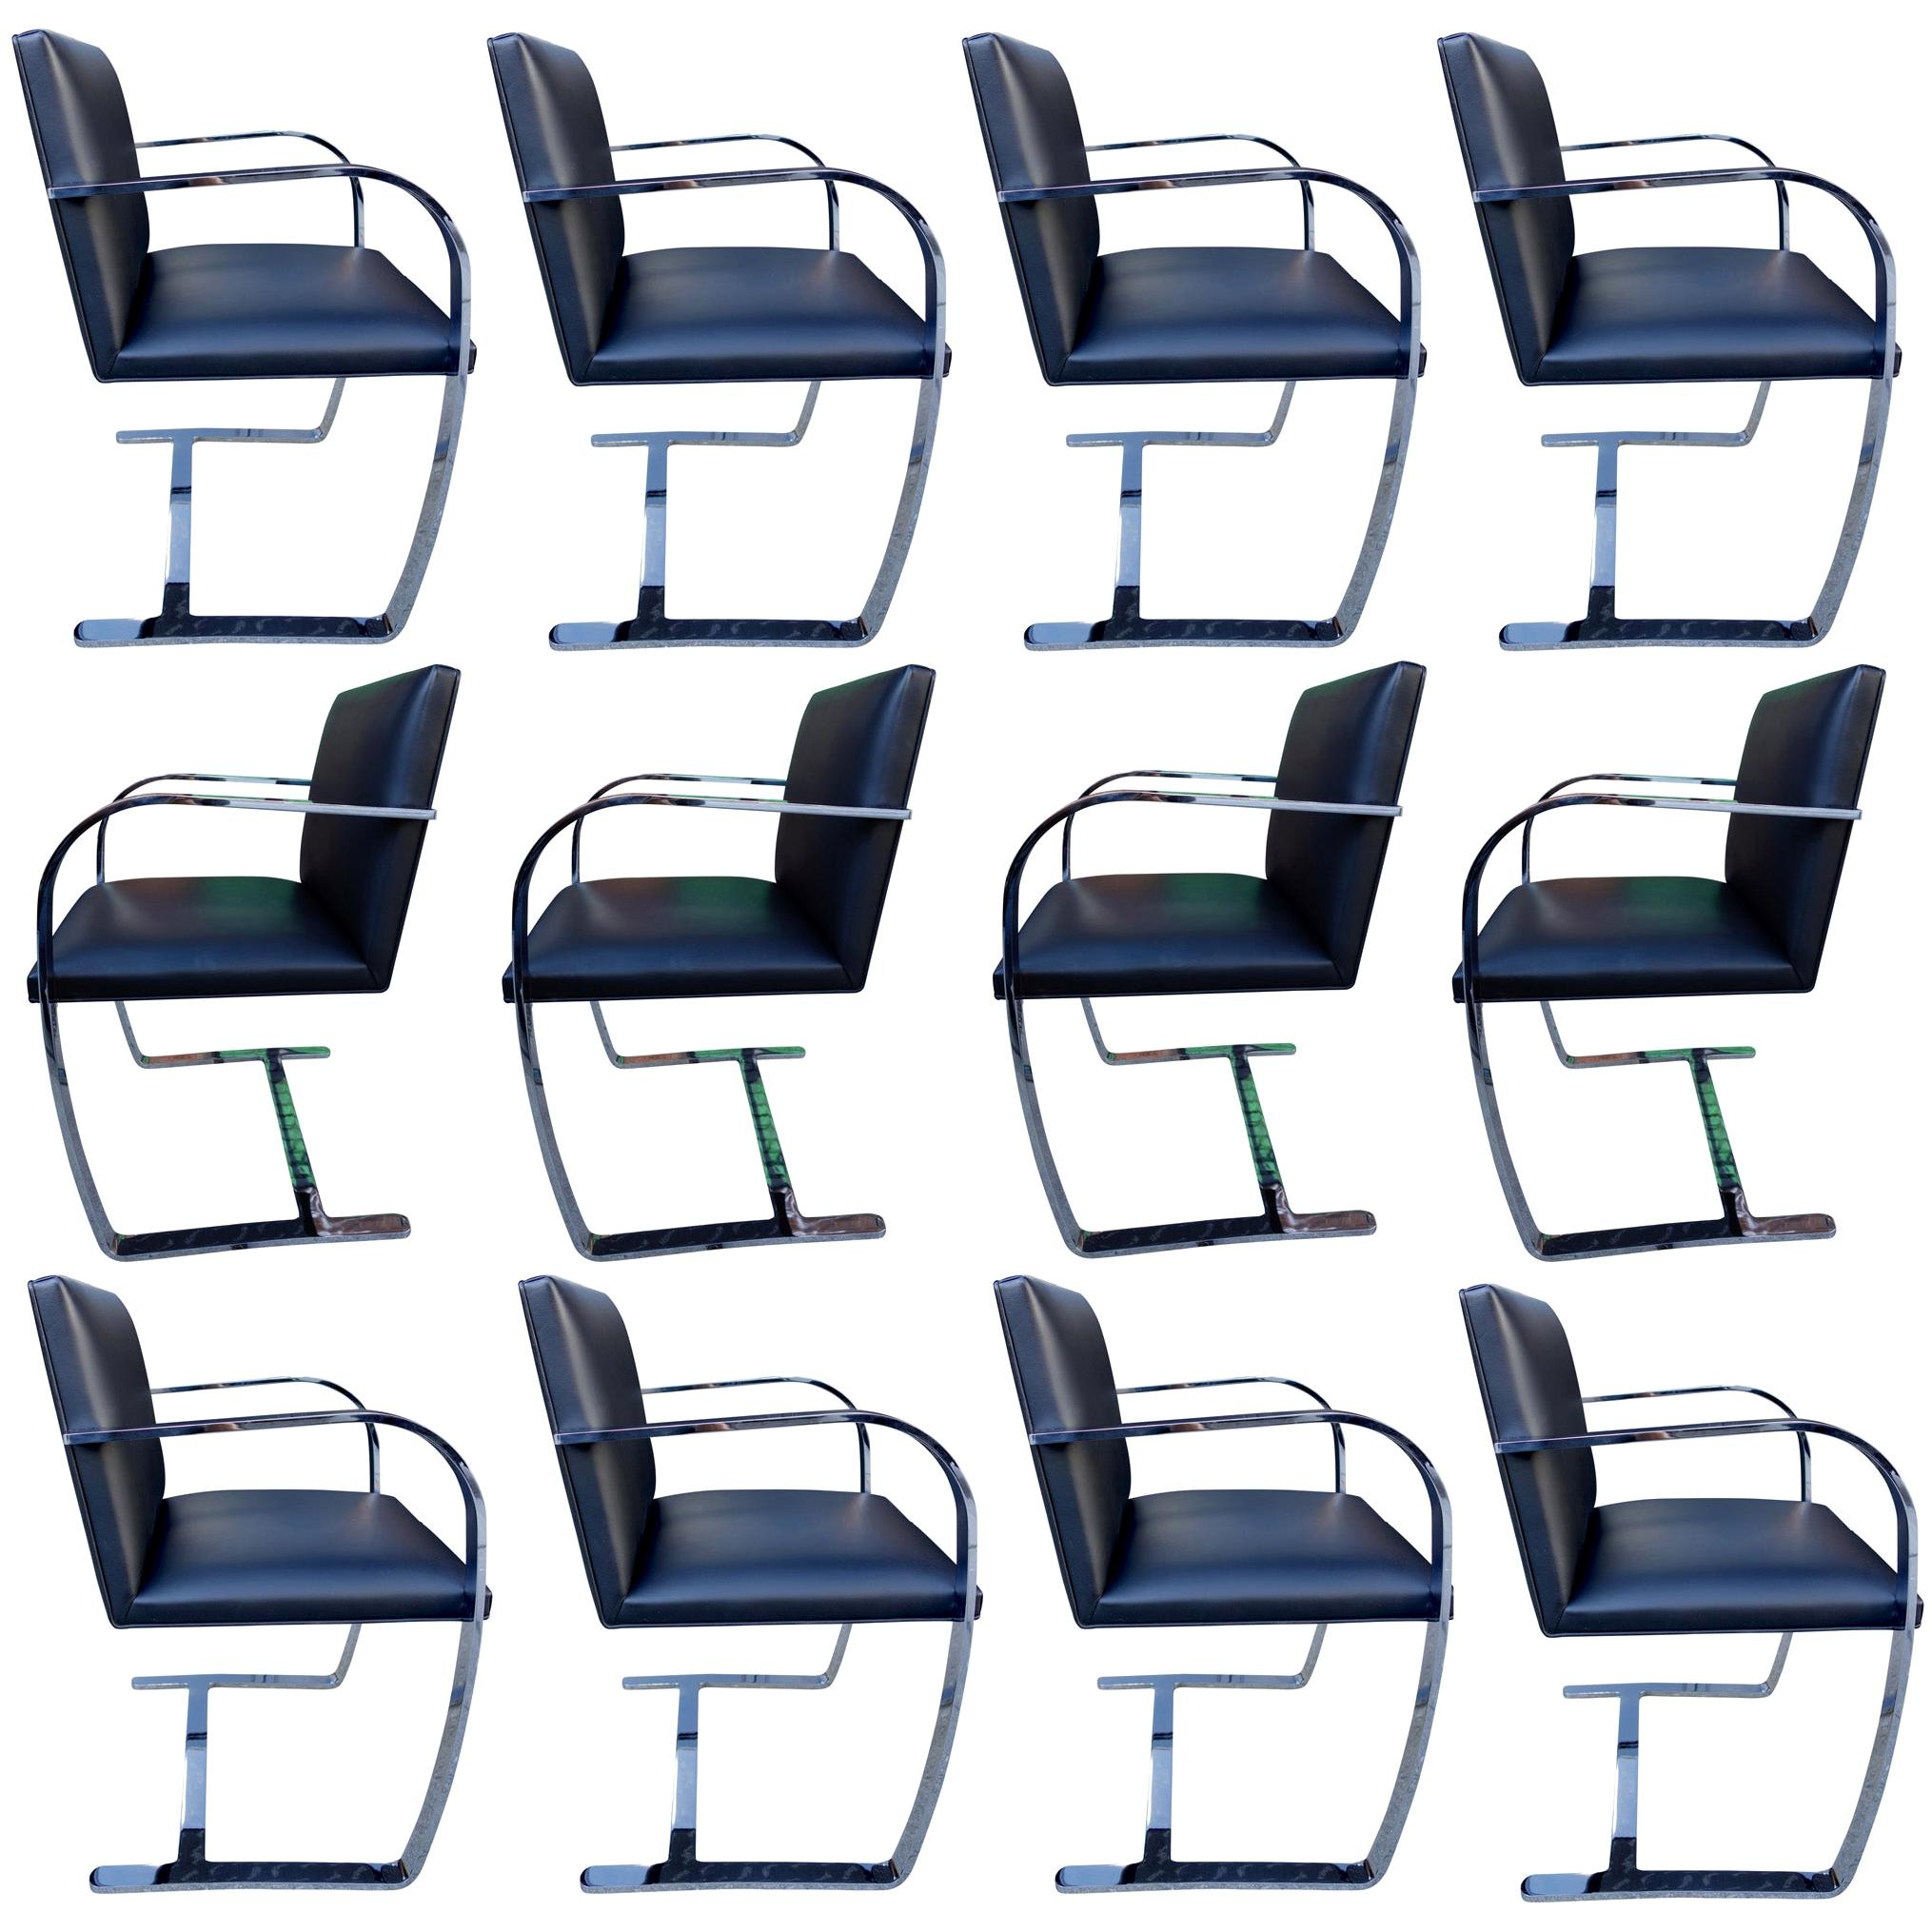 Authentic Midcentury Brno Armchairs for Knoll in Black Leather